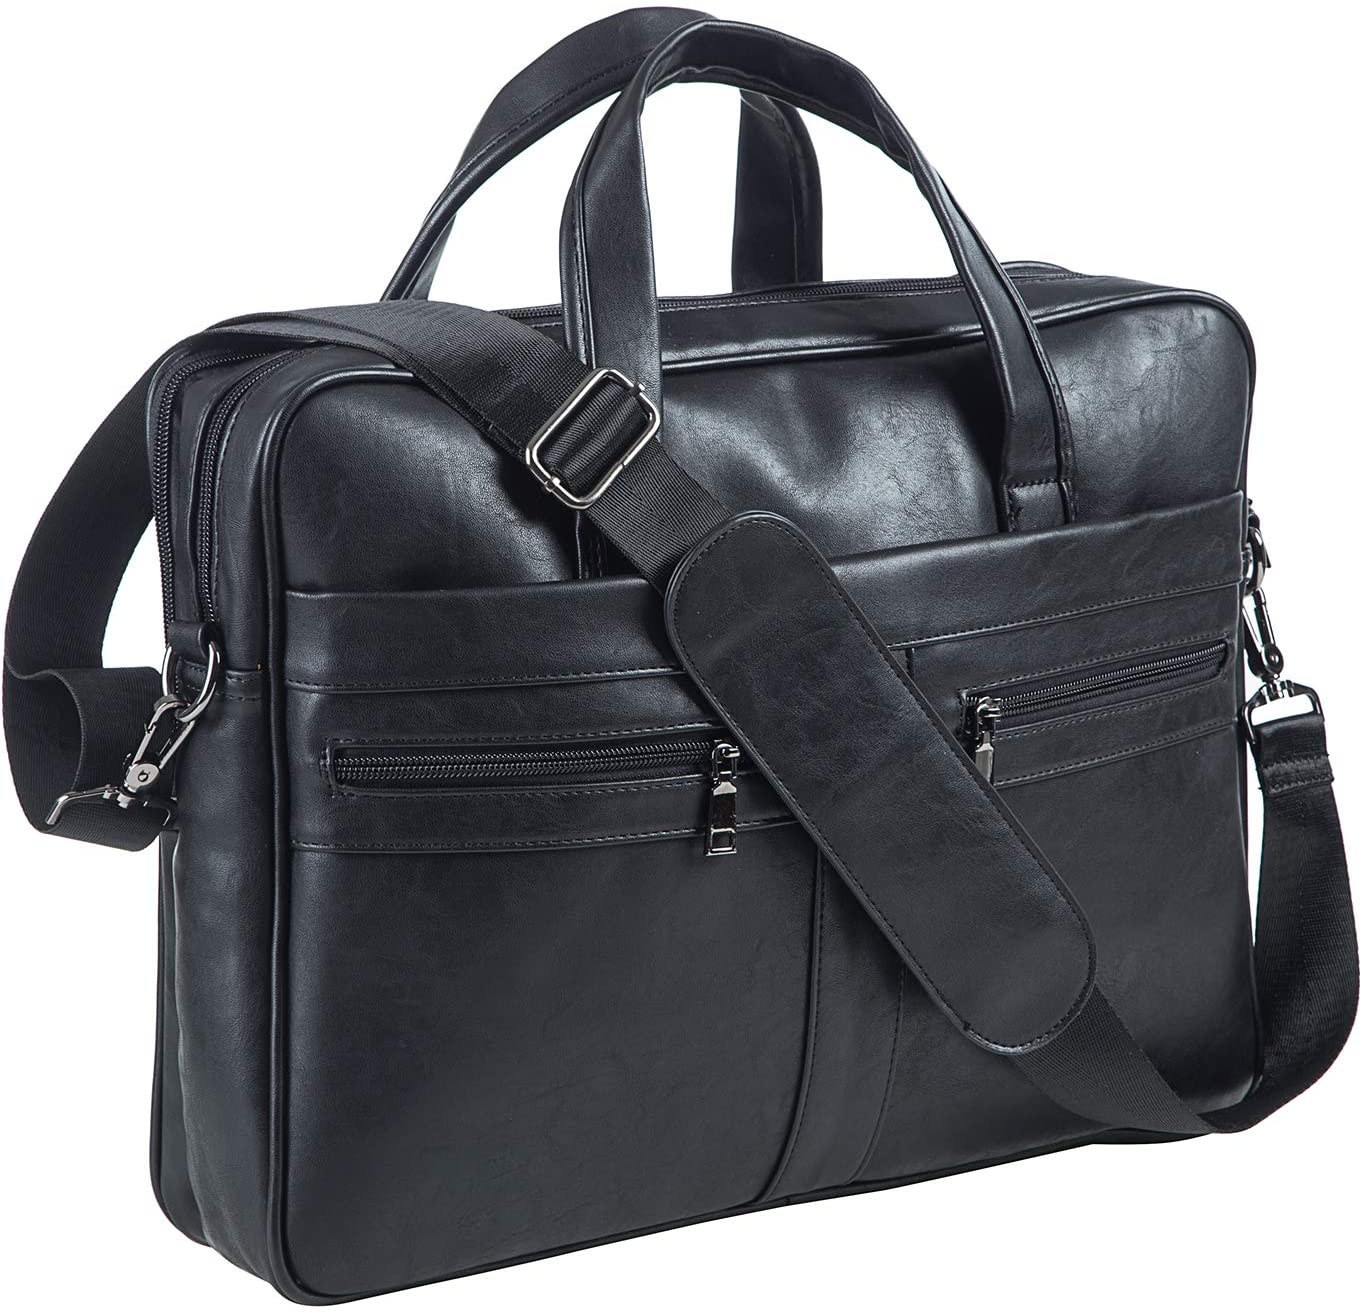 Men's Leather Messenger Bag, 17.3 Inches Laptop Briefcase Business Satchel Computer Handbag Shoulder Bag for Men (Black)